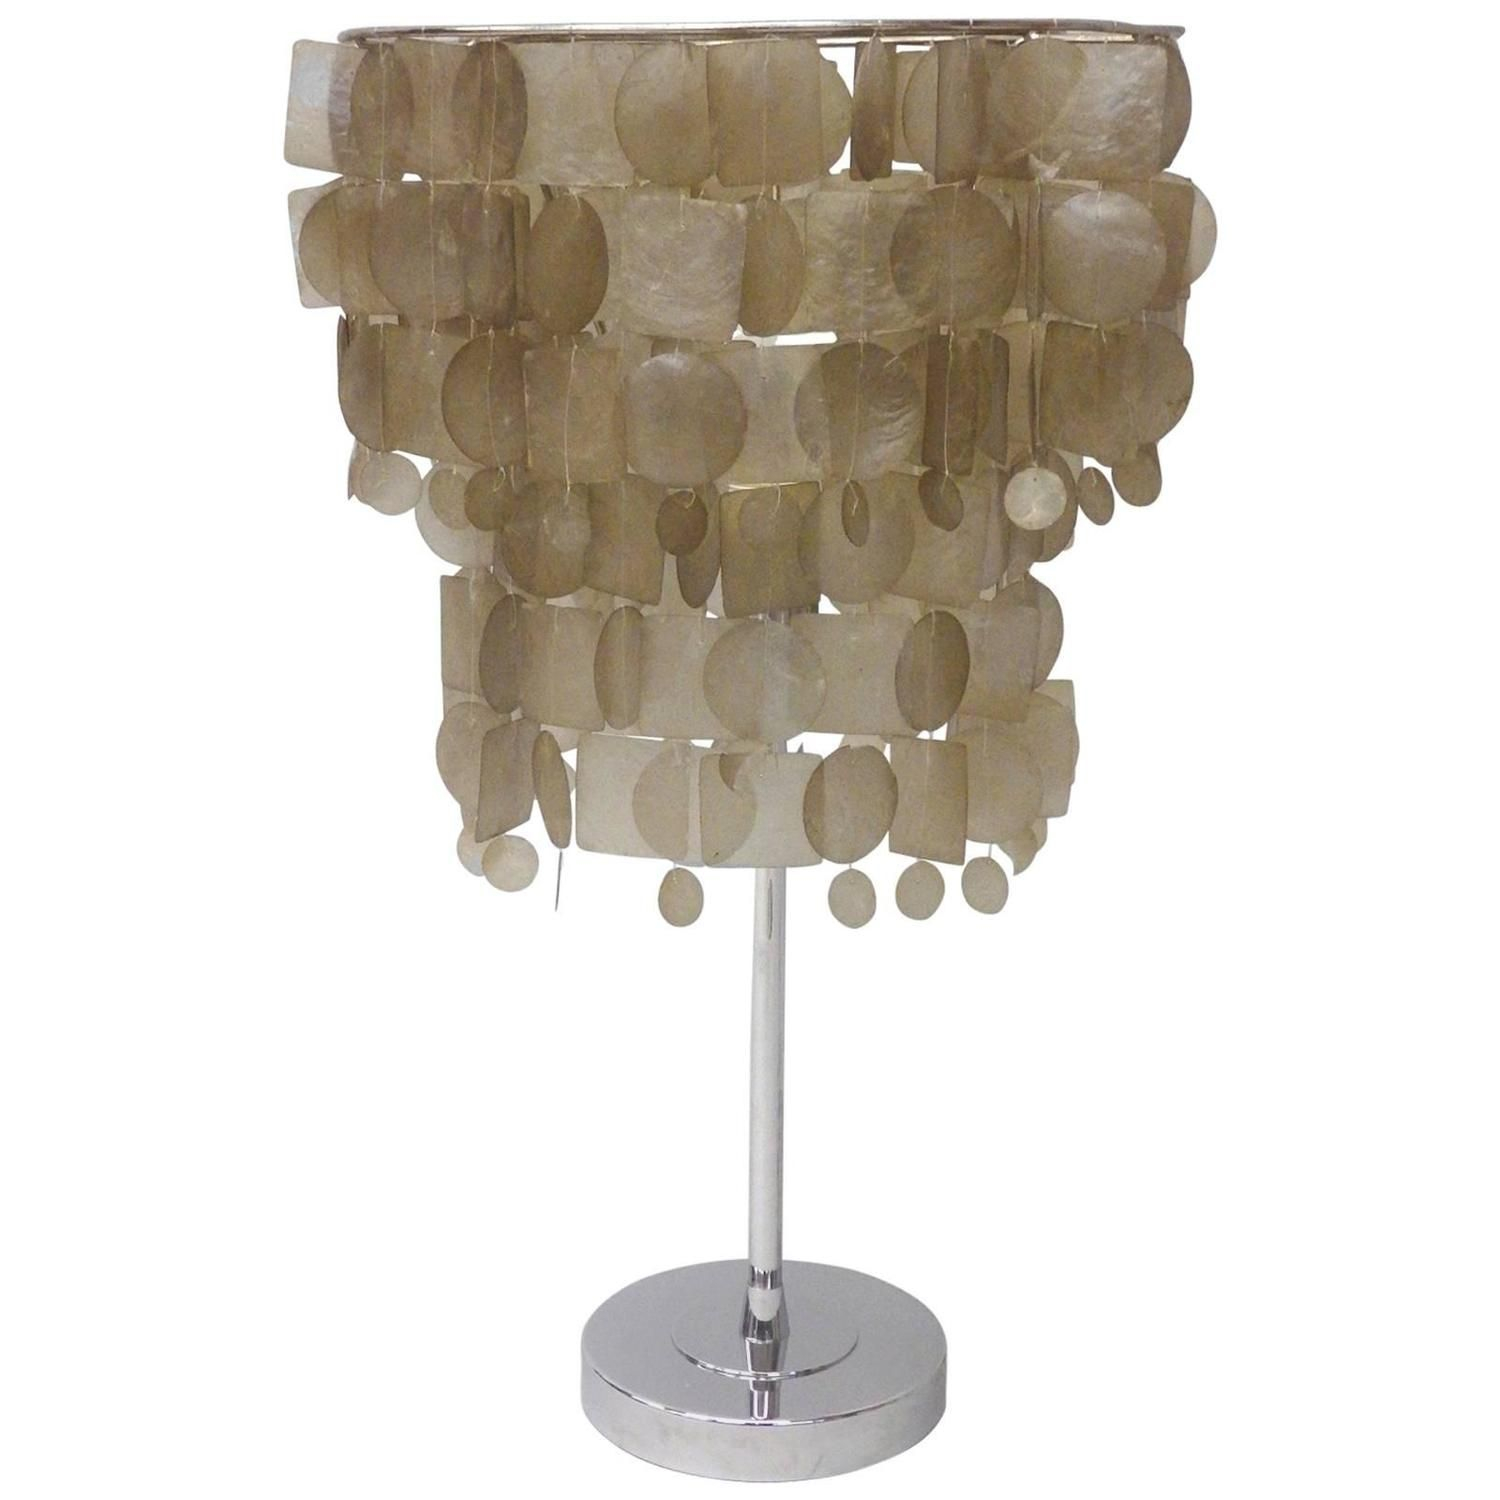 Pink capiz shell table lamp httpargharts pinterest pink capiz shell table lamp aloadofball Images